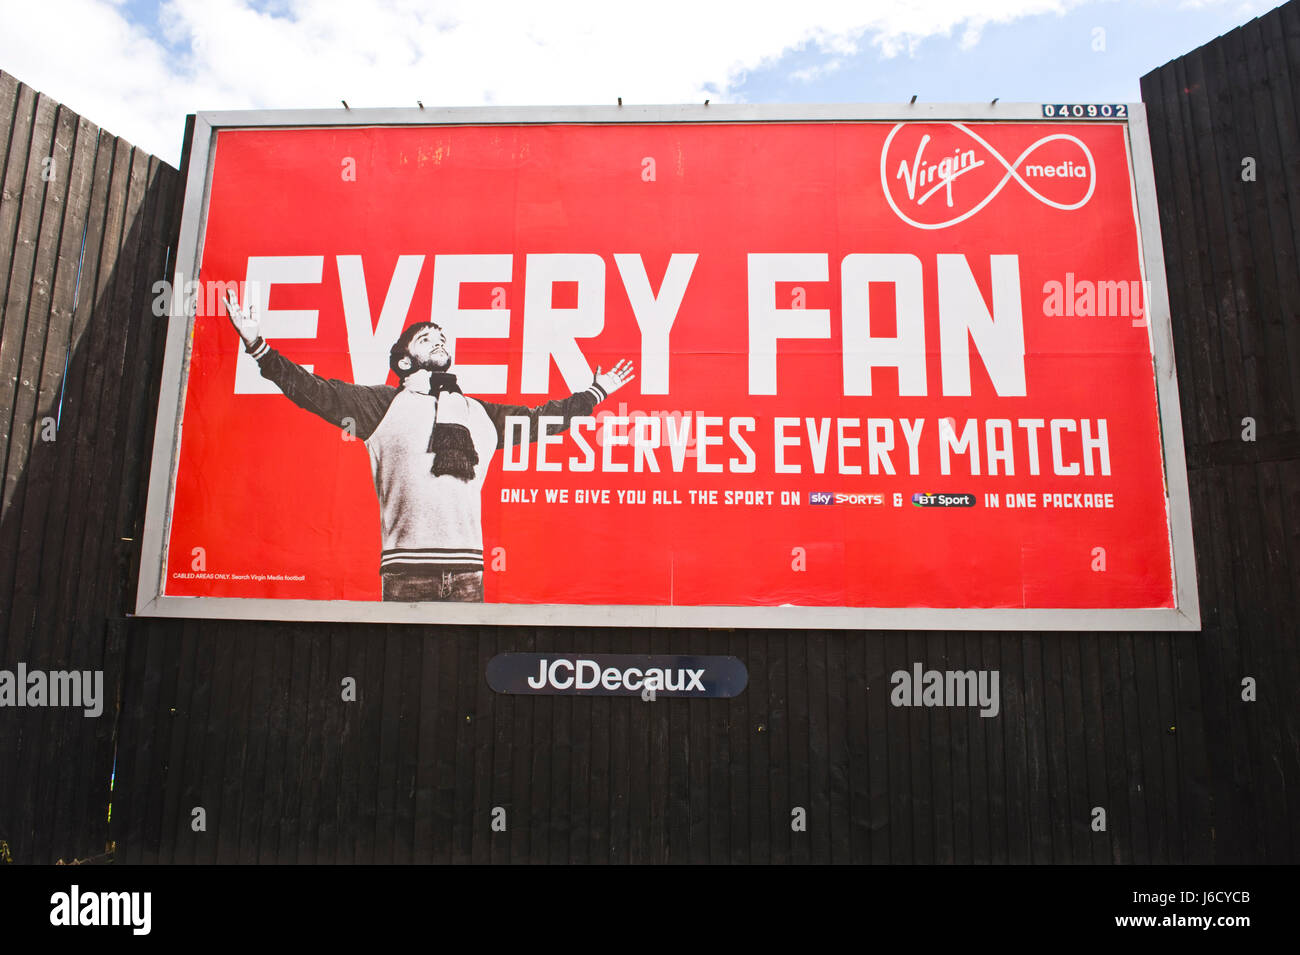 Virgin Media football for fans package 48 sheet advertising billboard on JCDecaux site in Newport, South Wales, - Stock Image